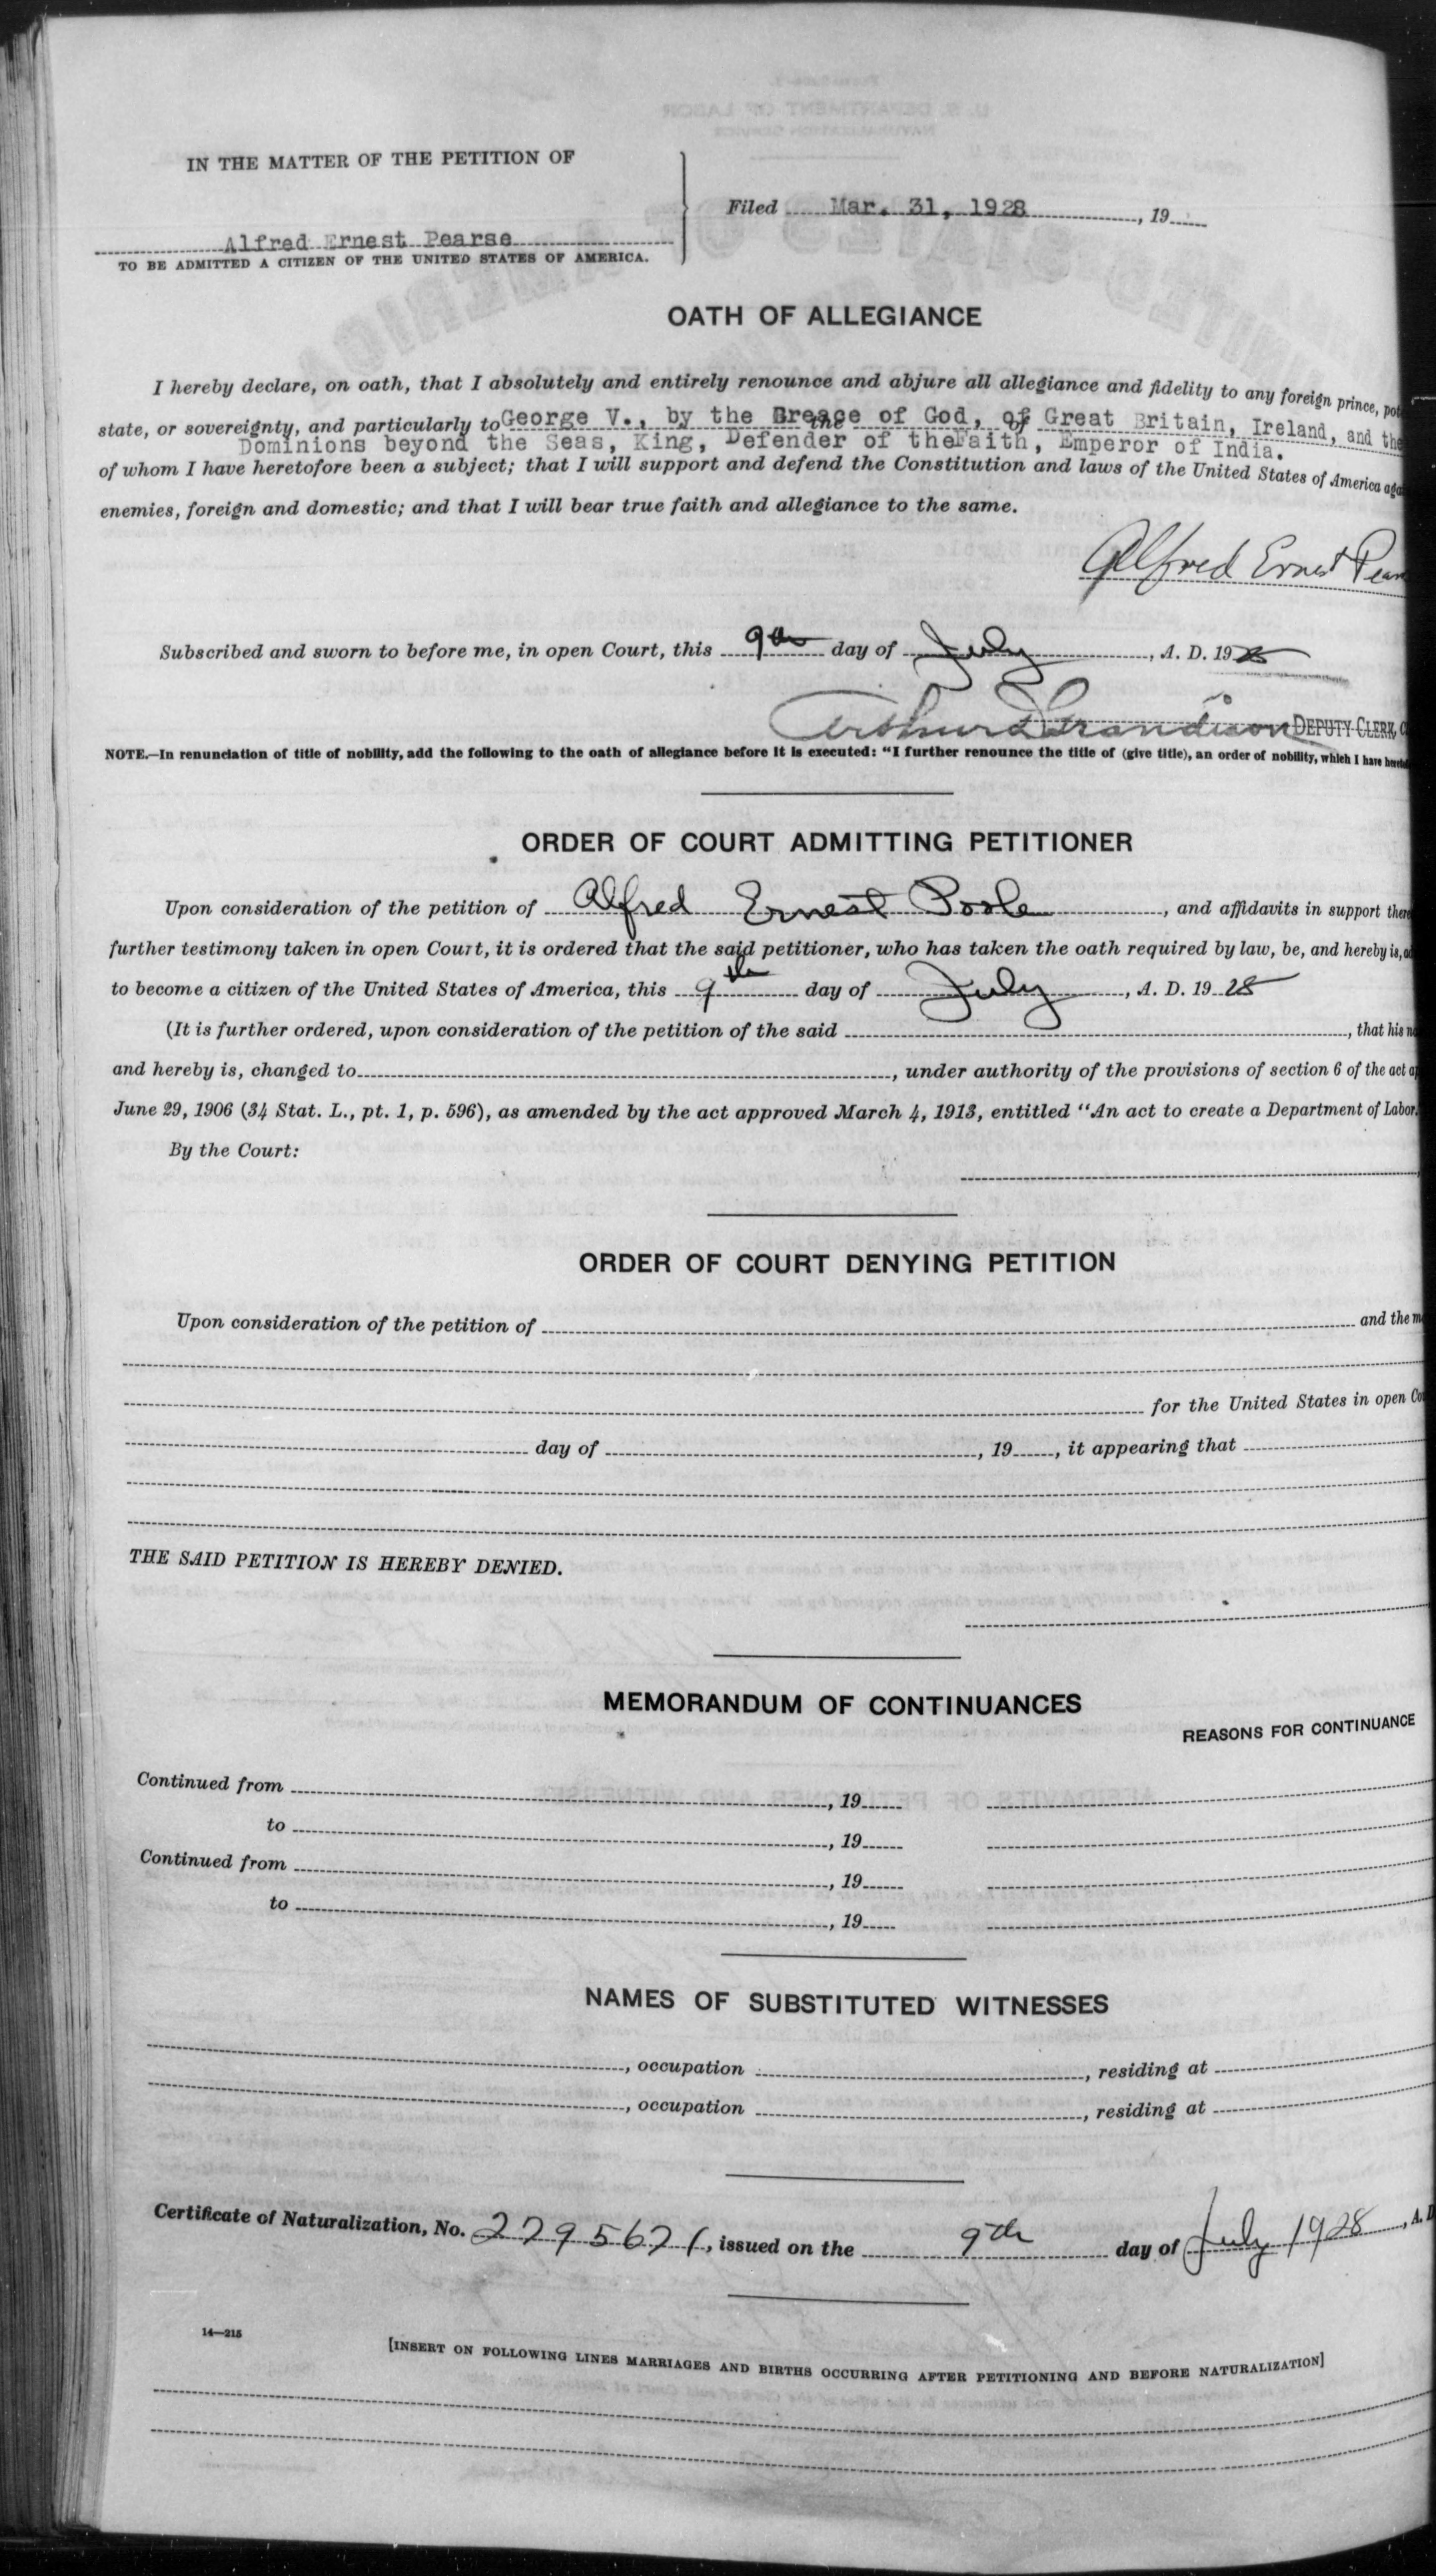 Petition for Naturalization of Alfred Ernest Poole